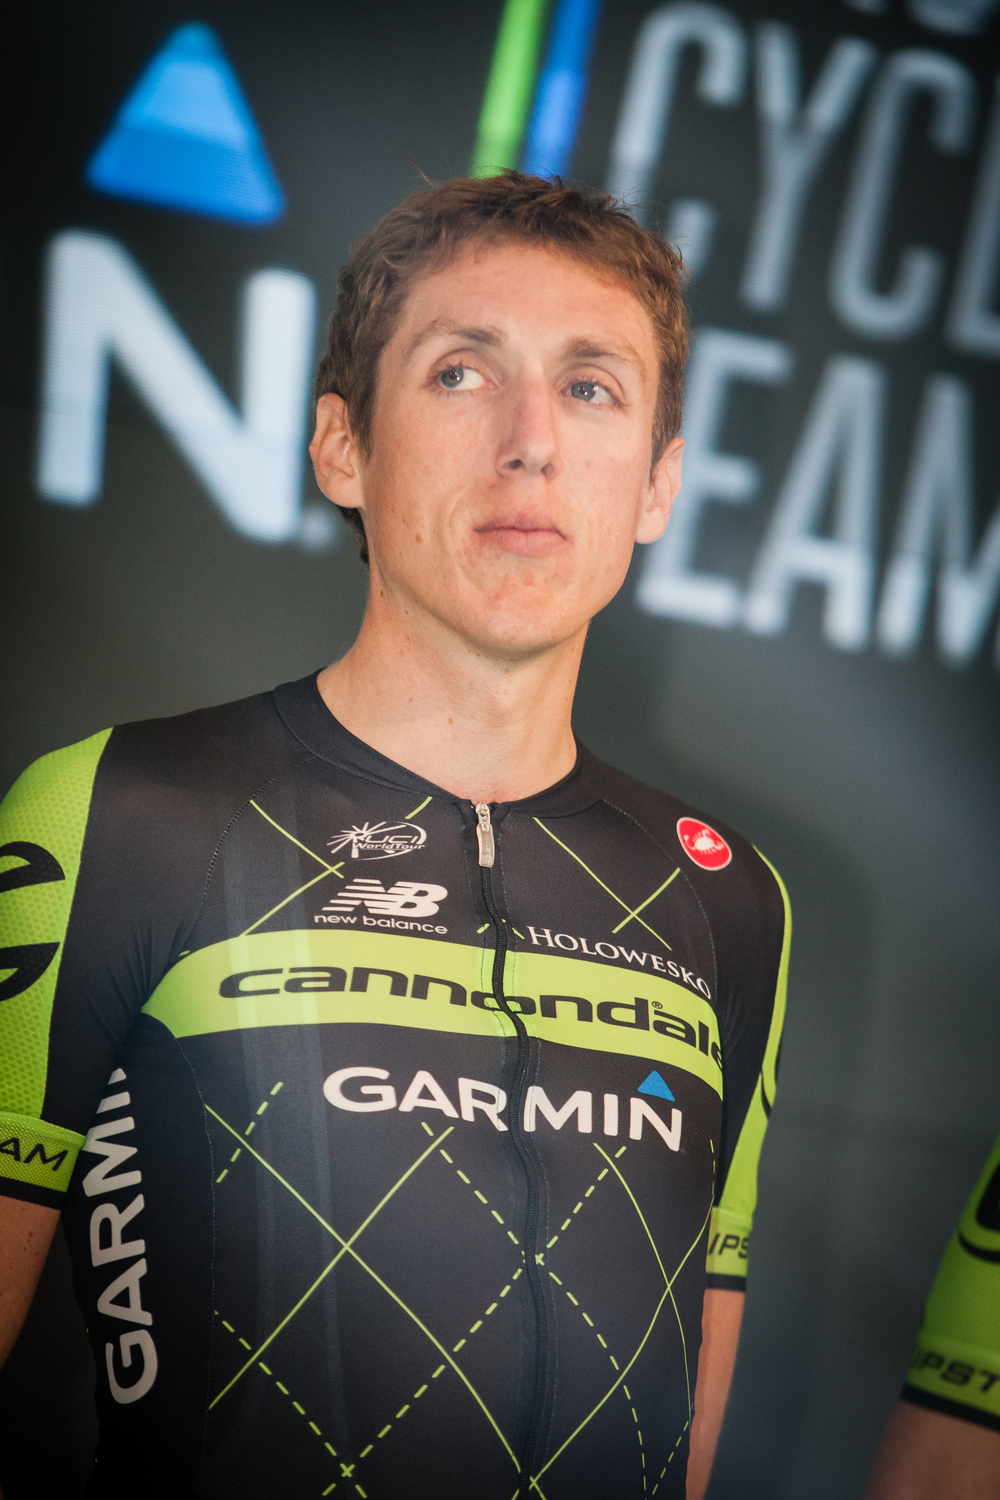 Dan Martin looks forward to new challenges in 2015